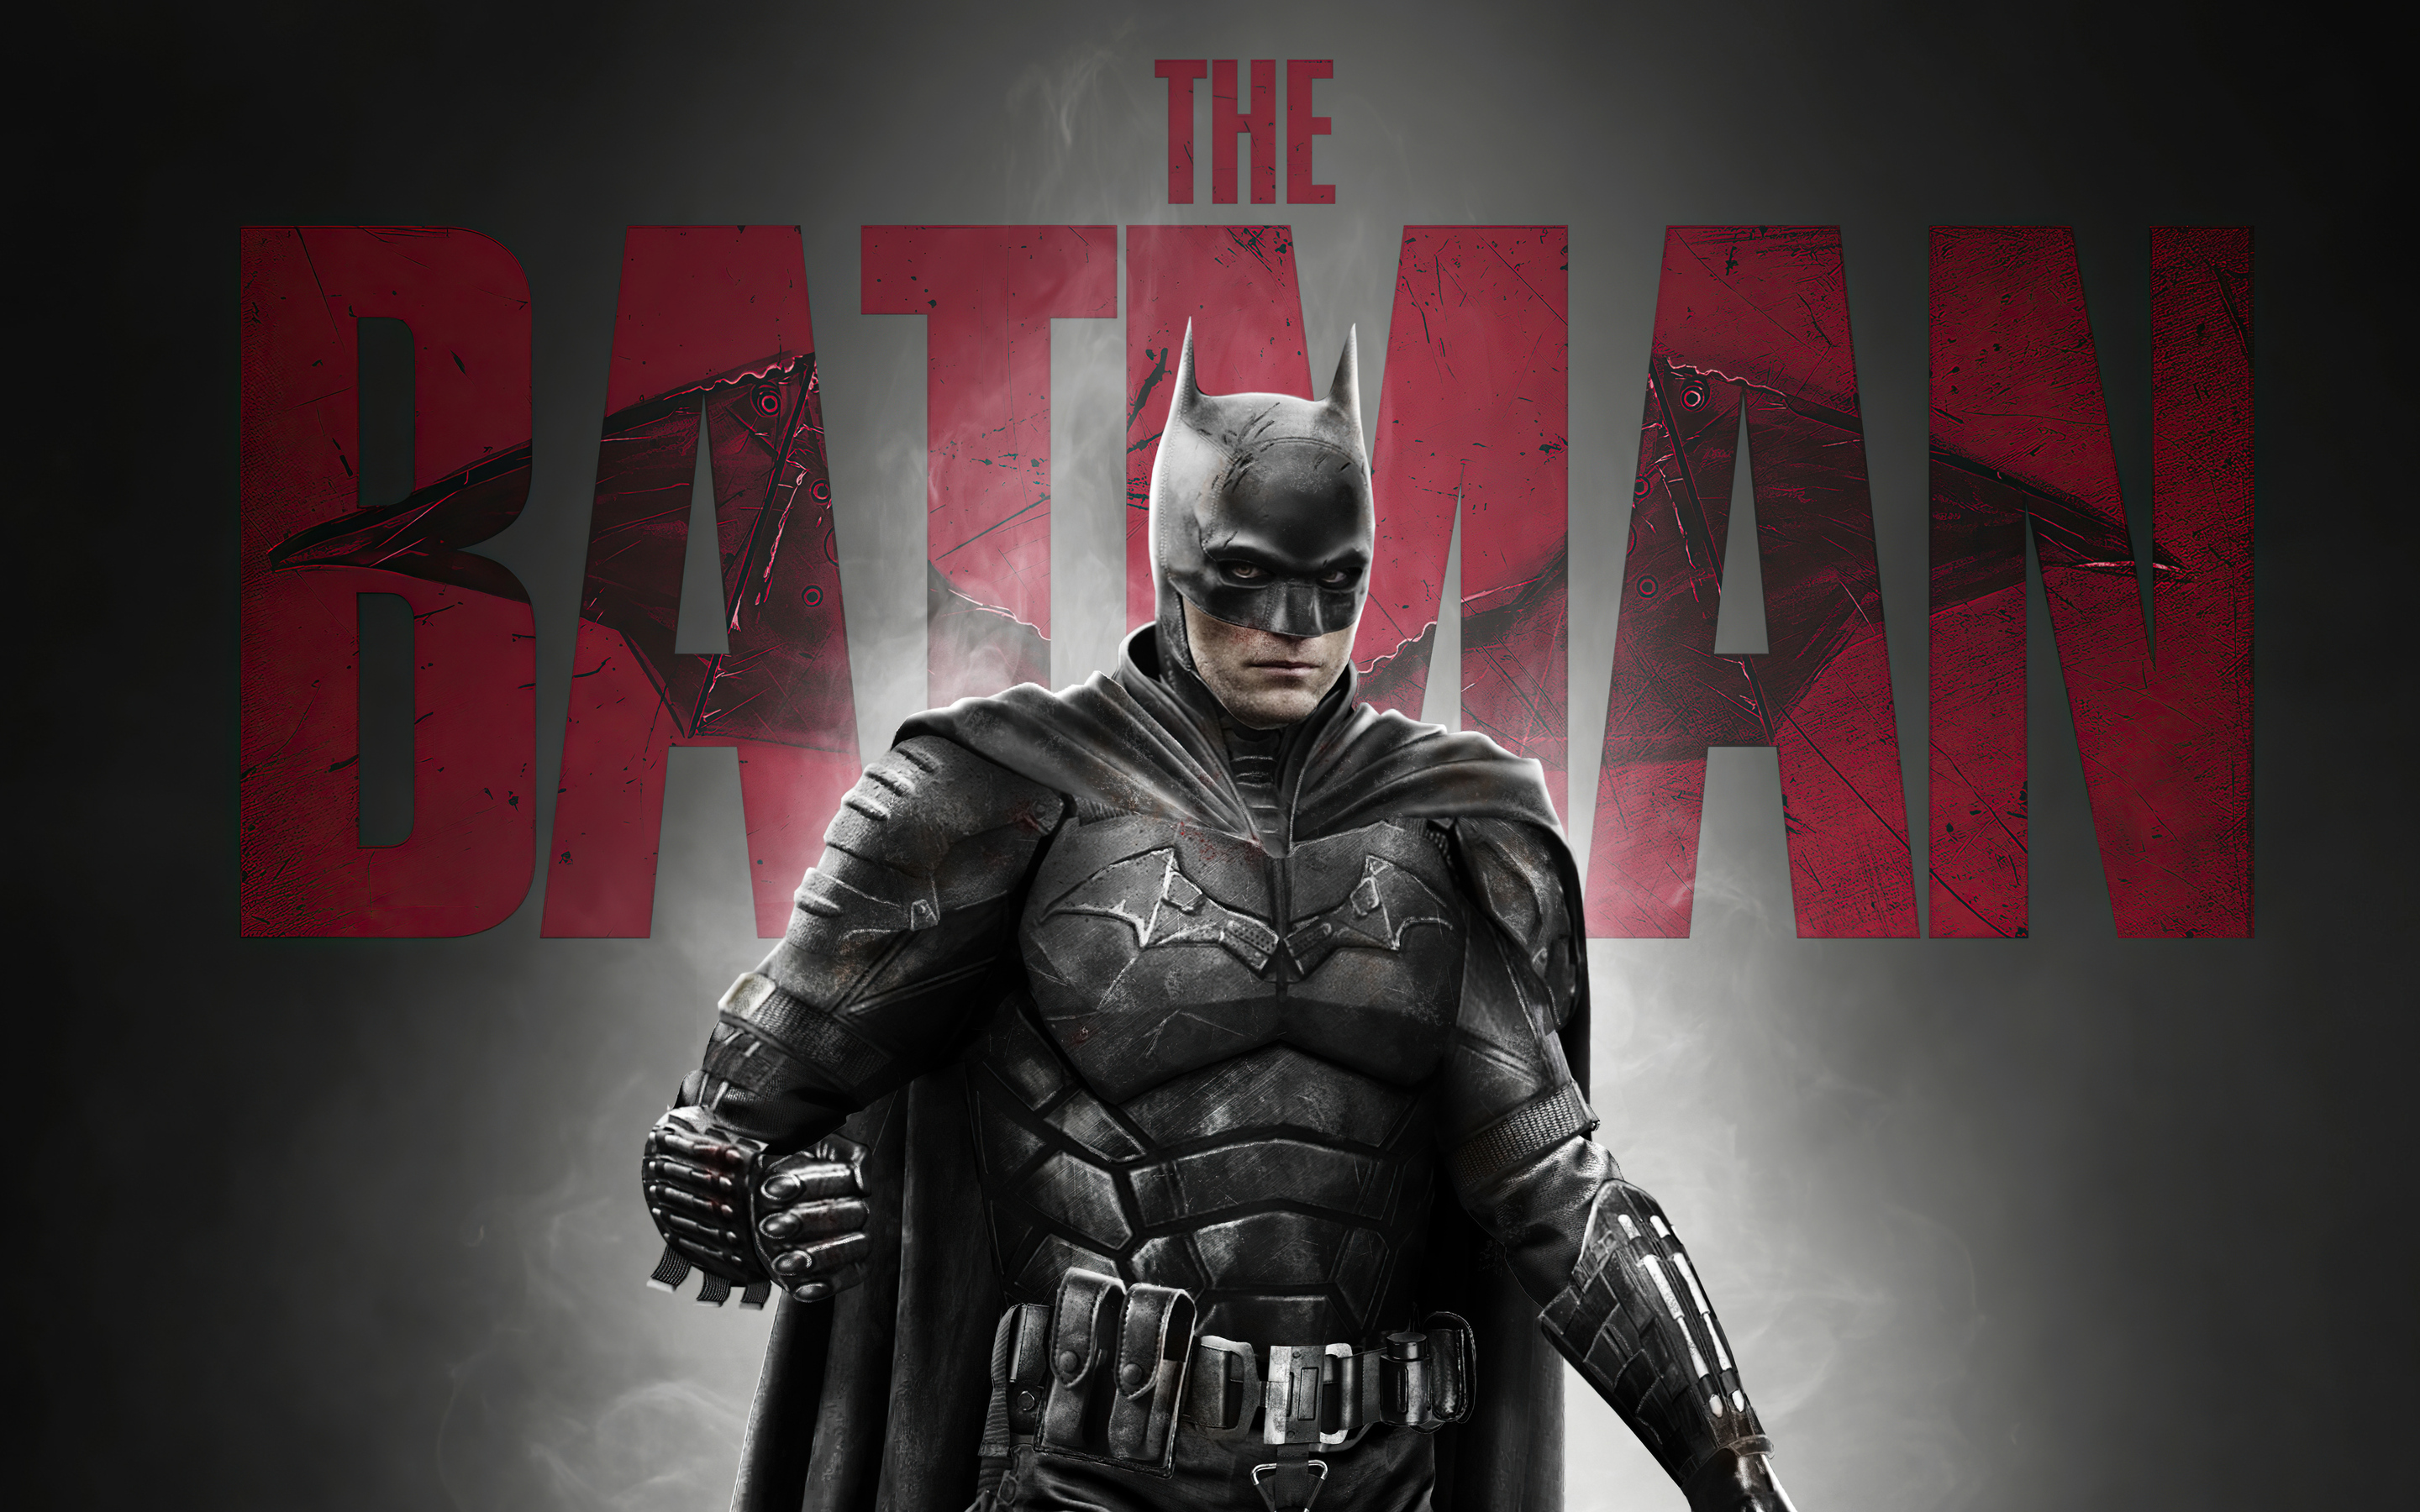 the-batman-2020-movie-poster-5k-gg.jpg